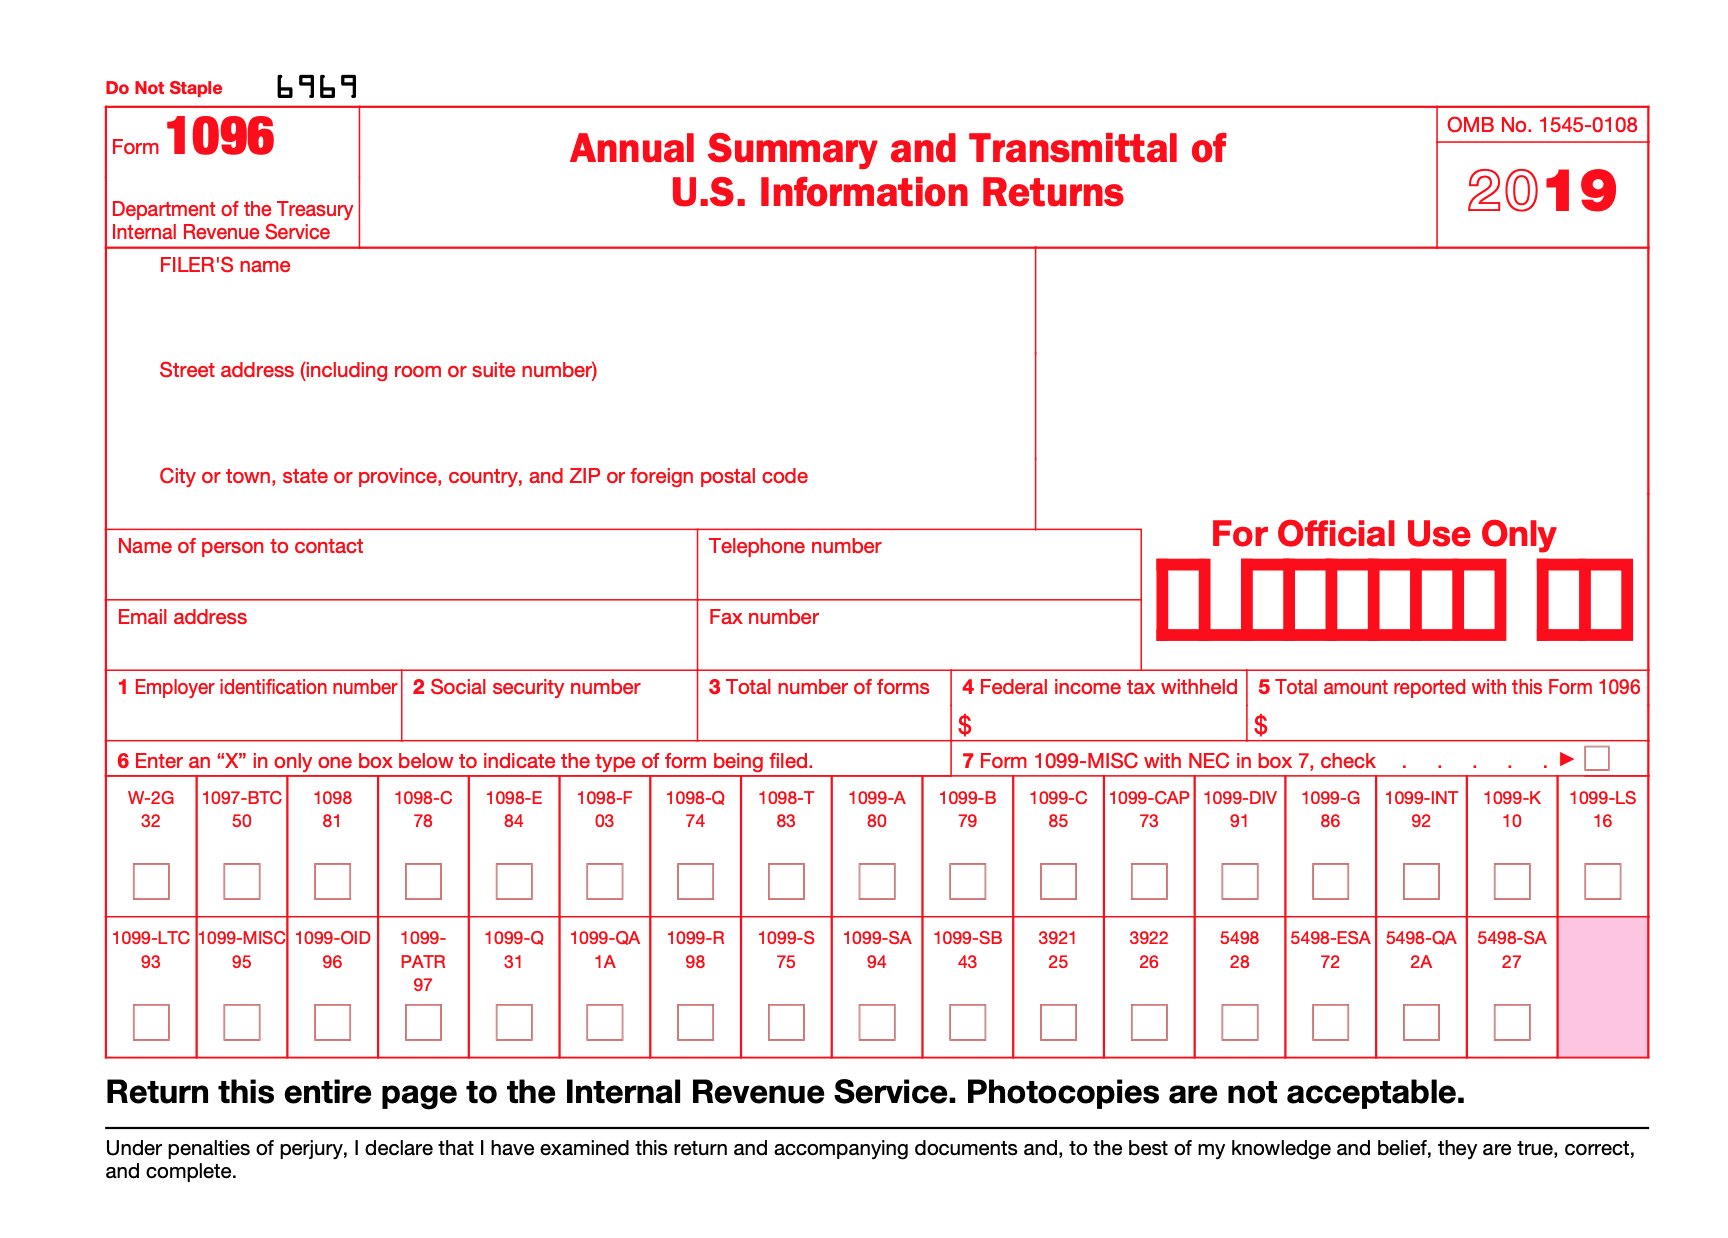 Form 1096 is a one-page form from the IRS that looks like this: